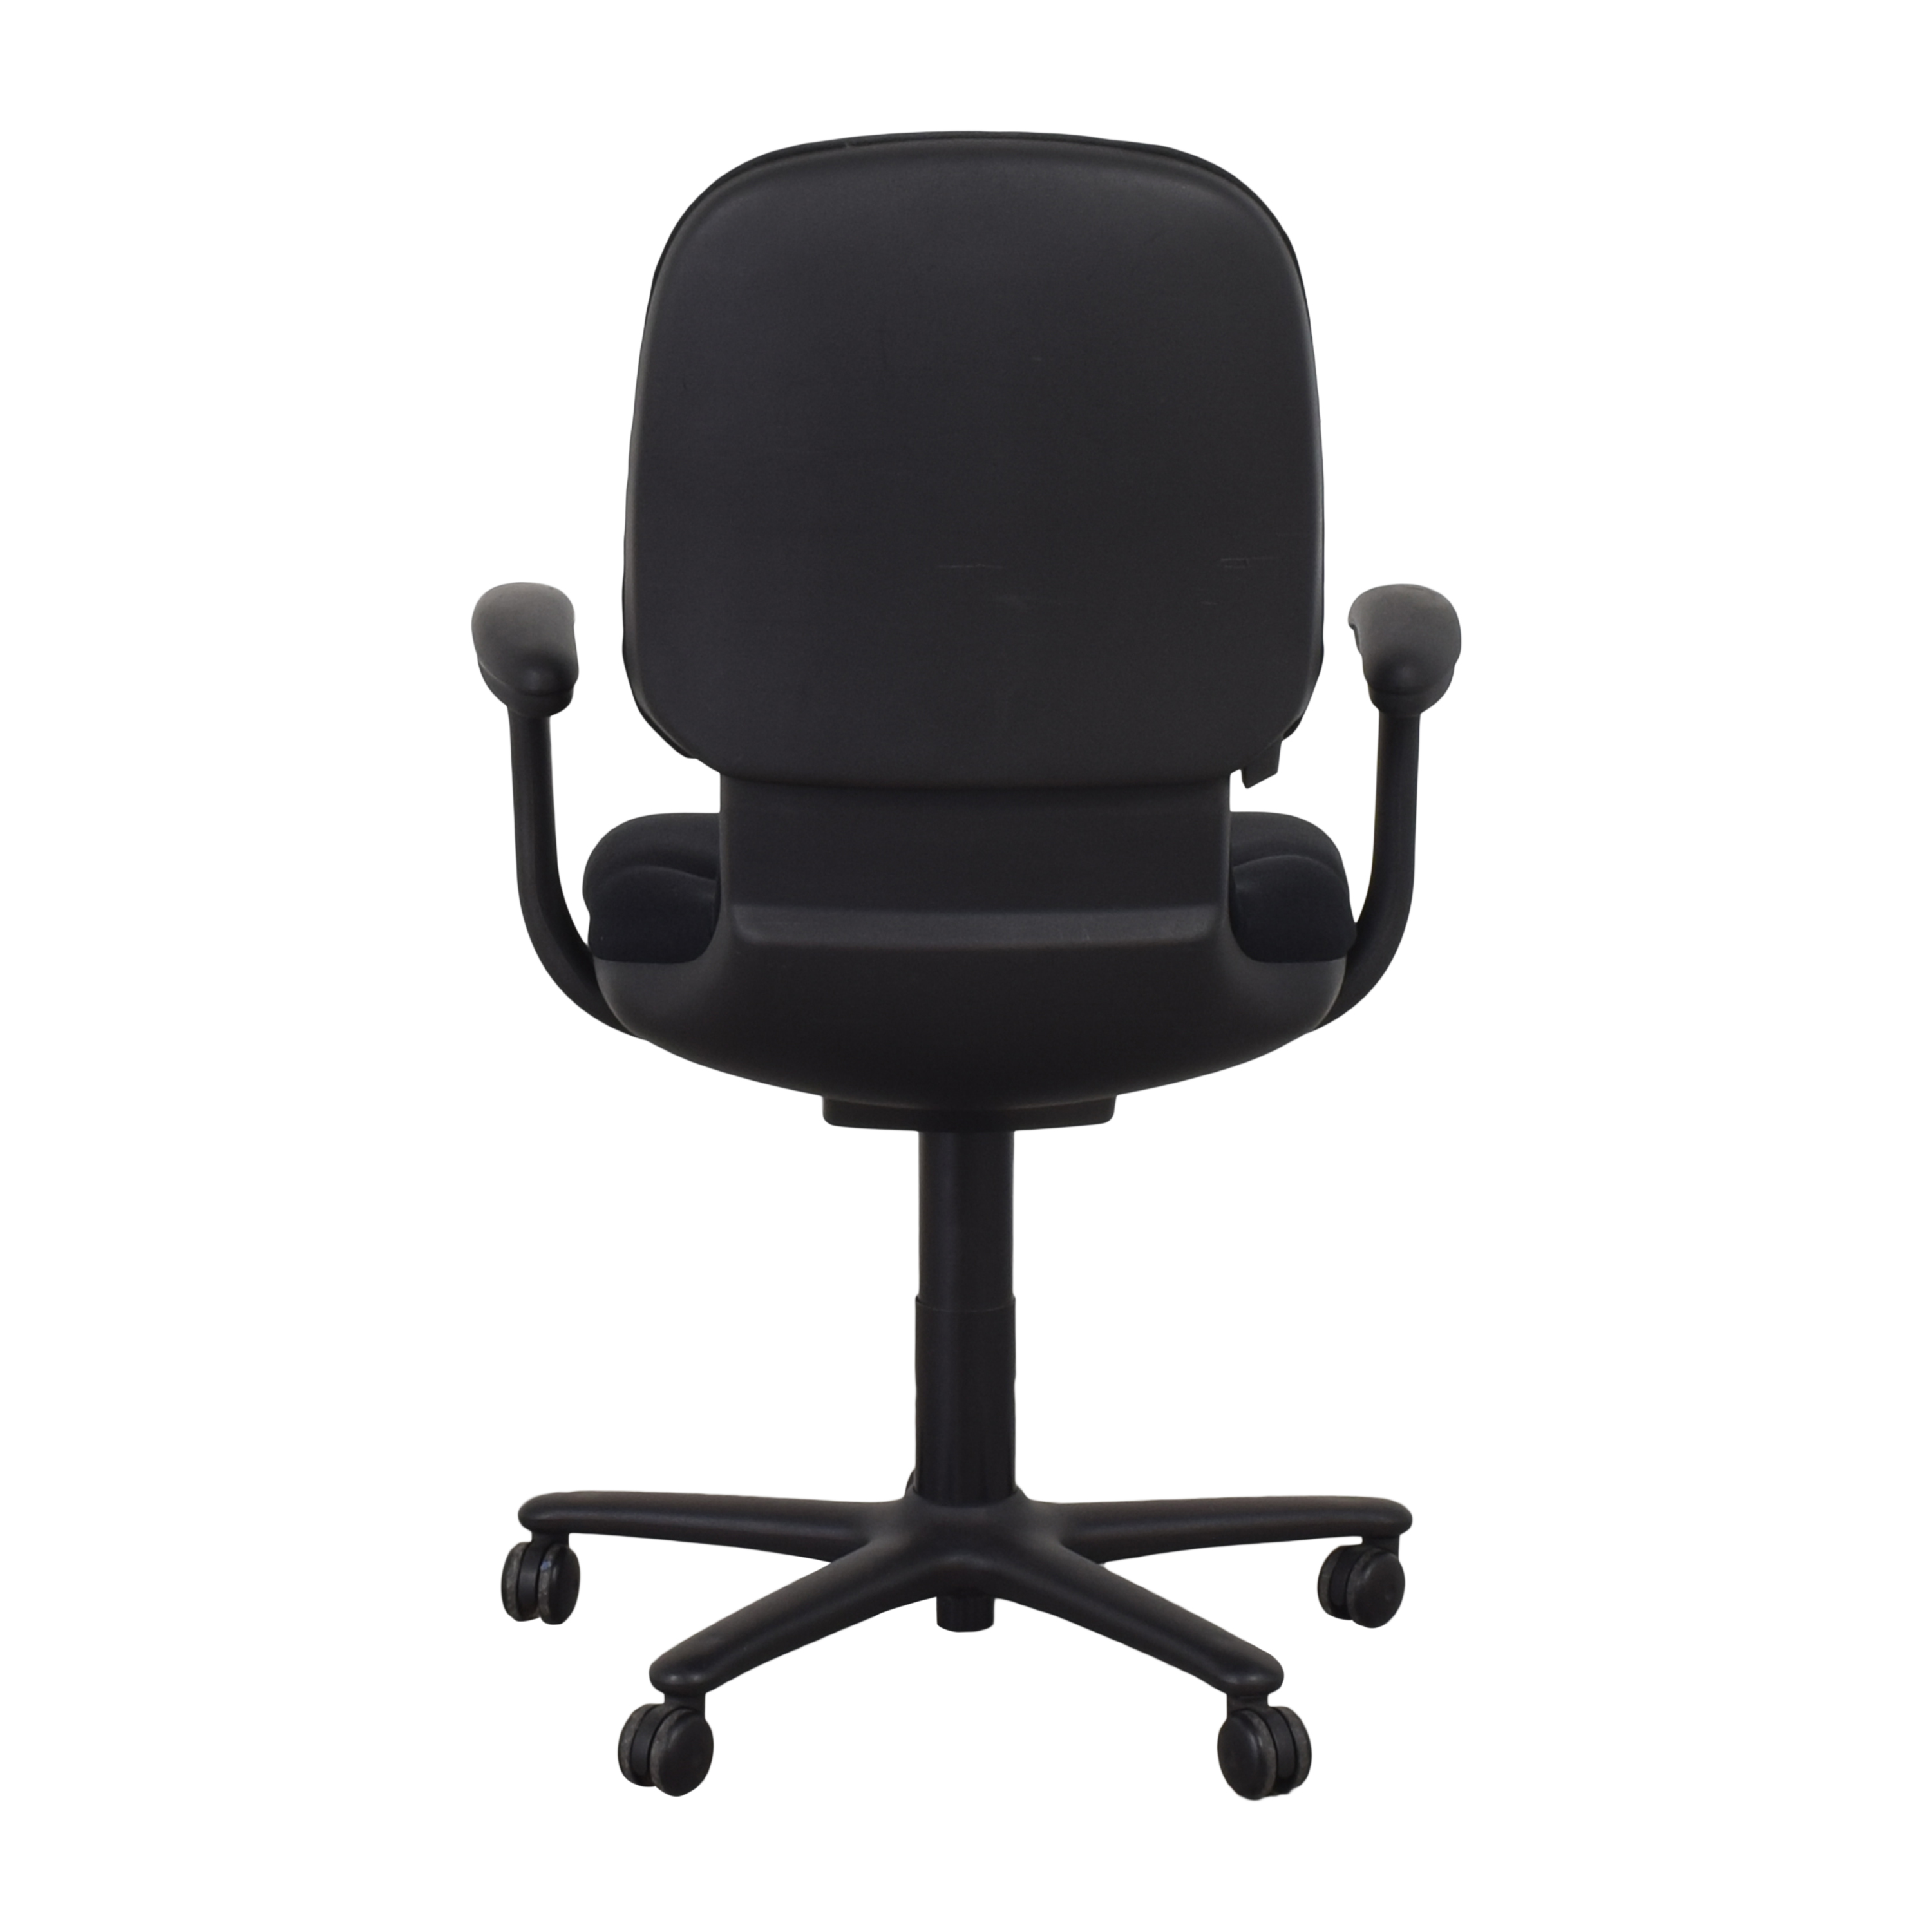 Steelcase Steelcase Desk Chair Home Office Chairs